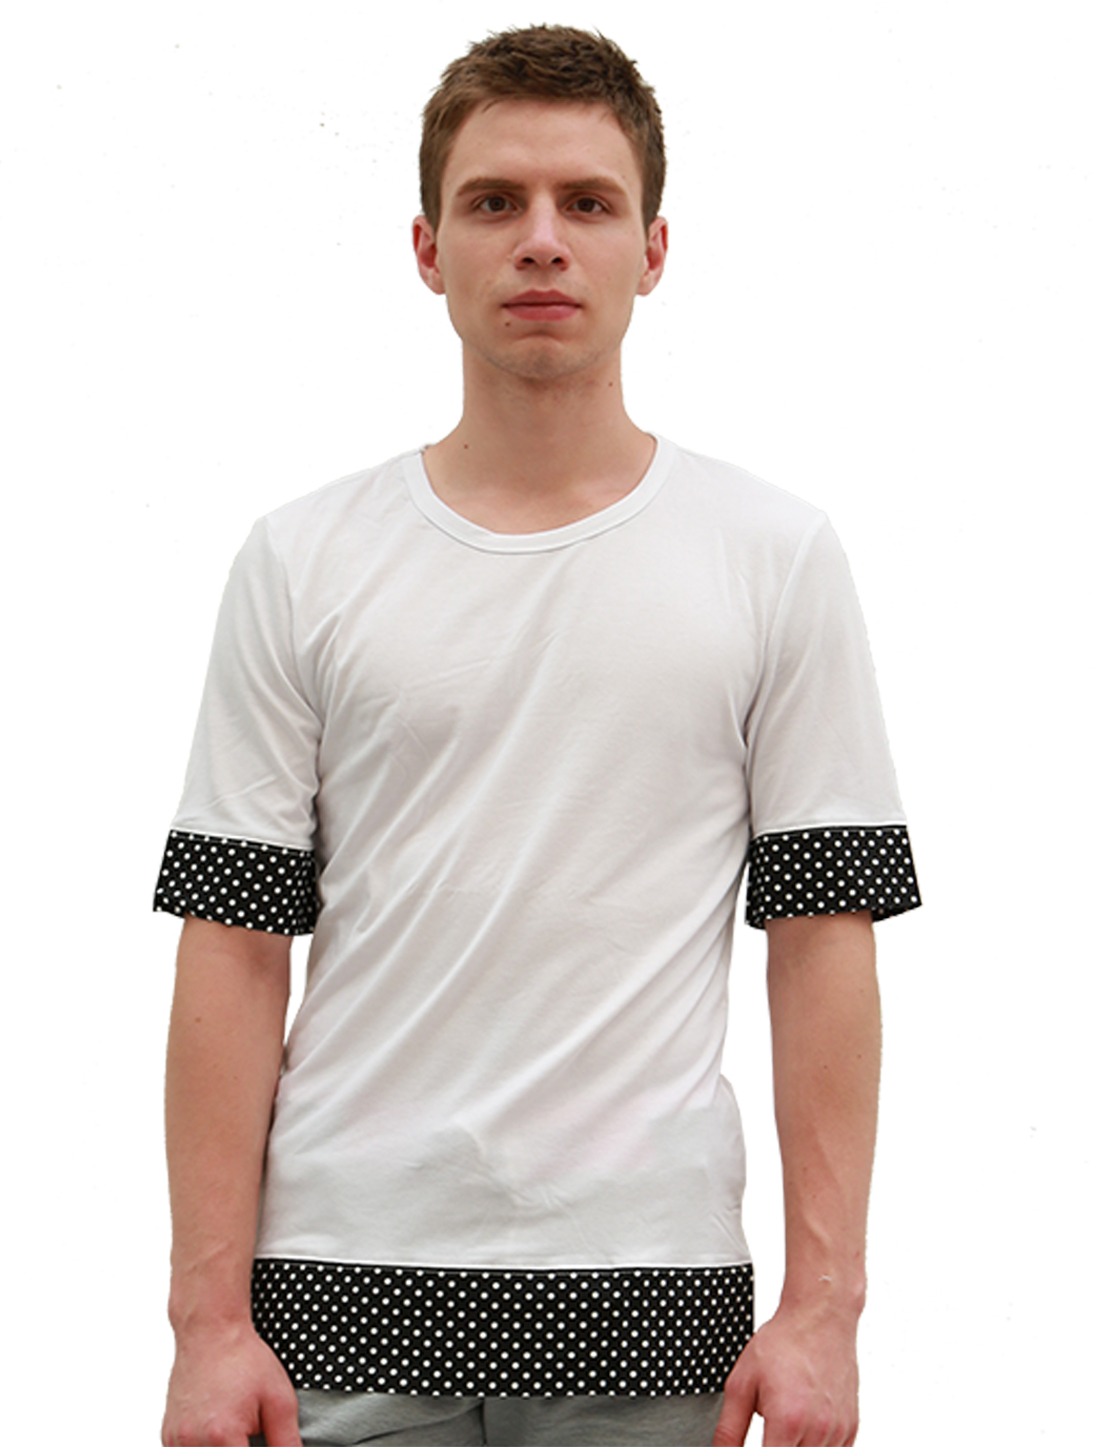 Men Dotted Paneled Trim Casual Crew Neck Tee White M